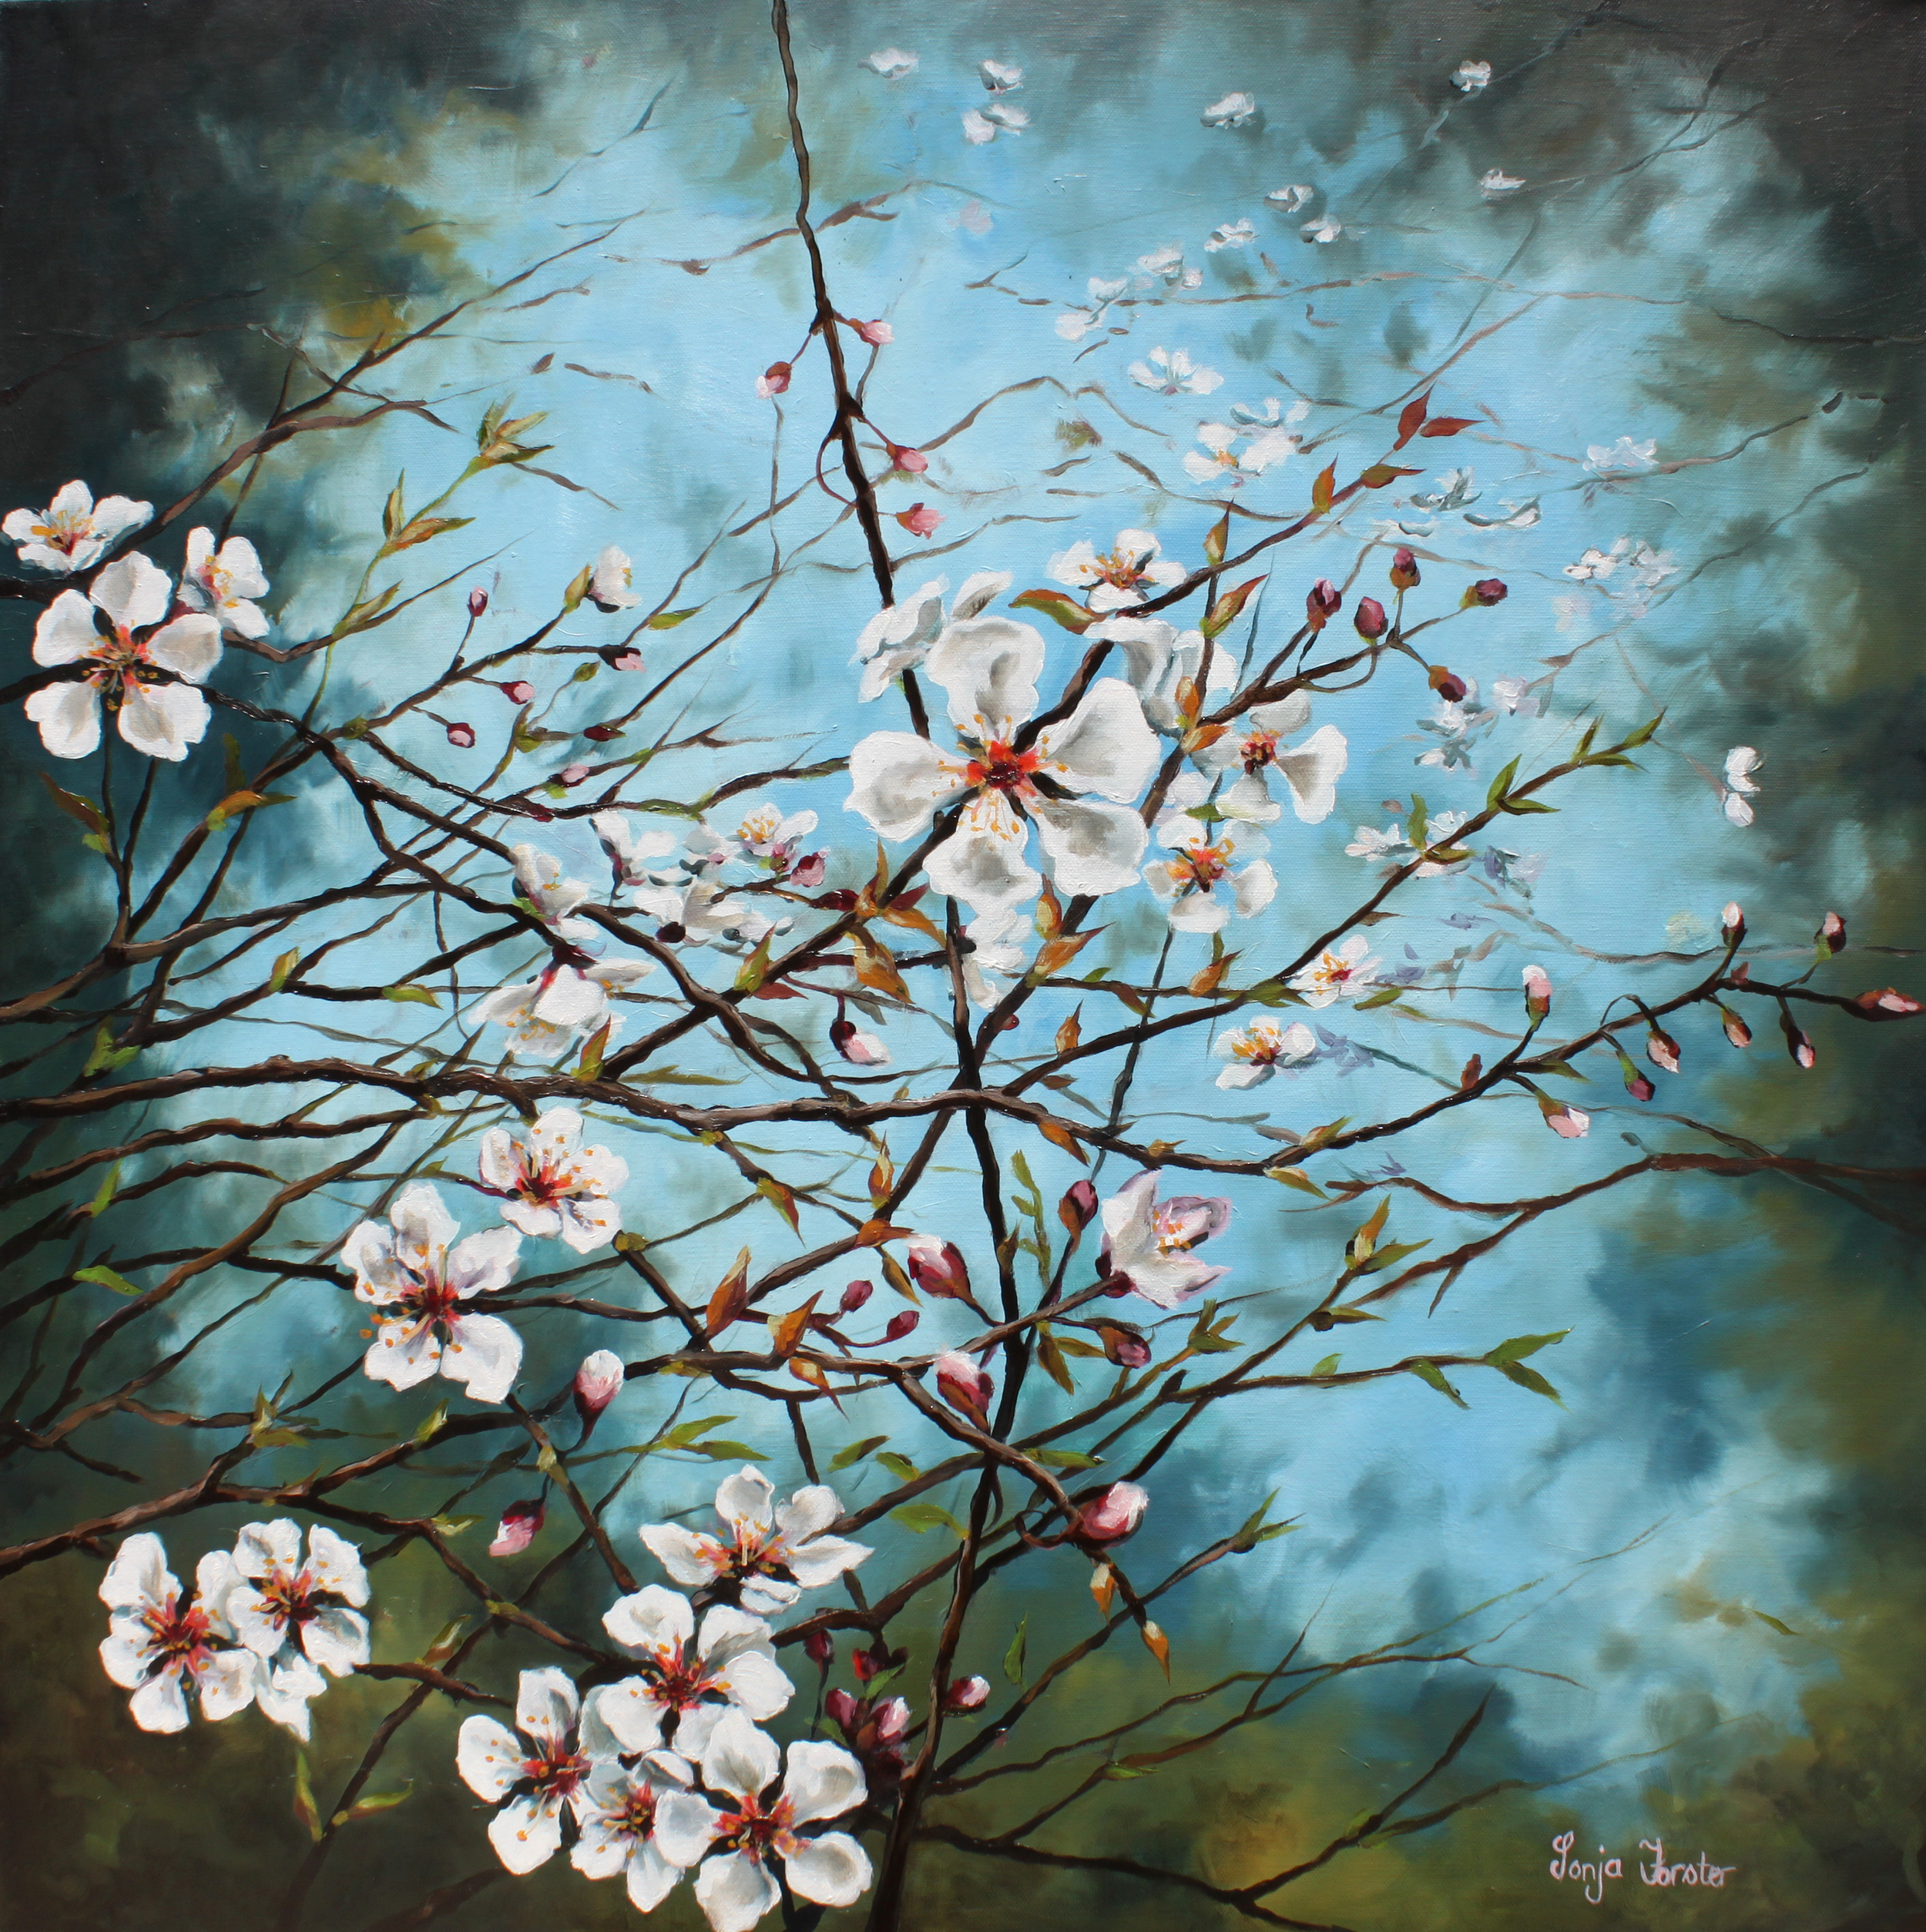 Sonja Forster Art - Blooming Cherry Blossoms.jpg